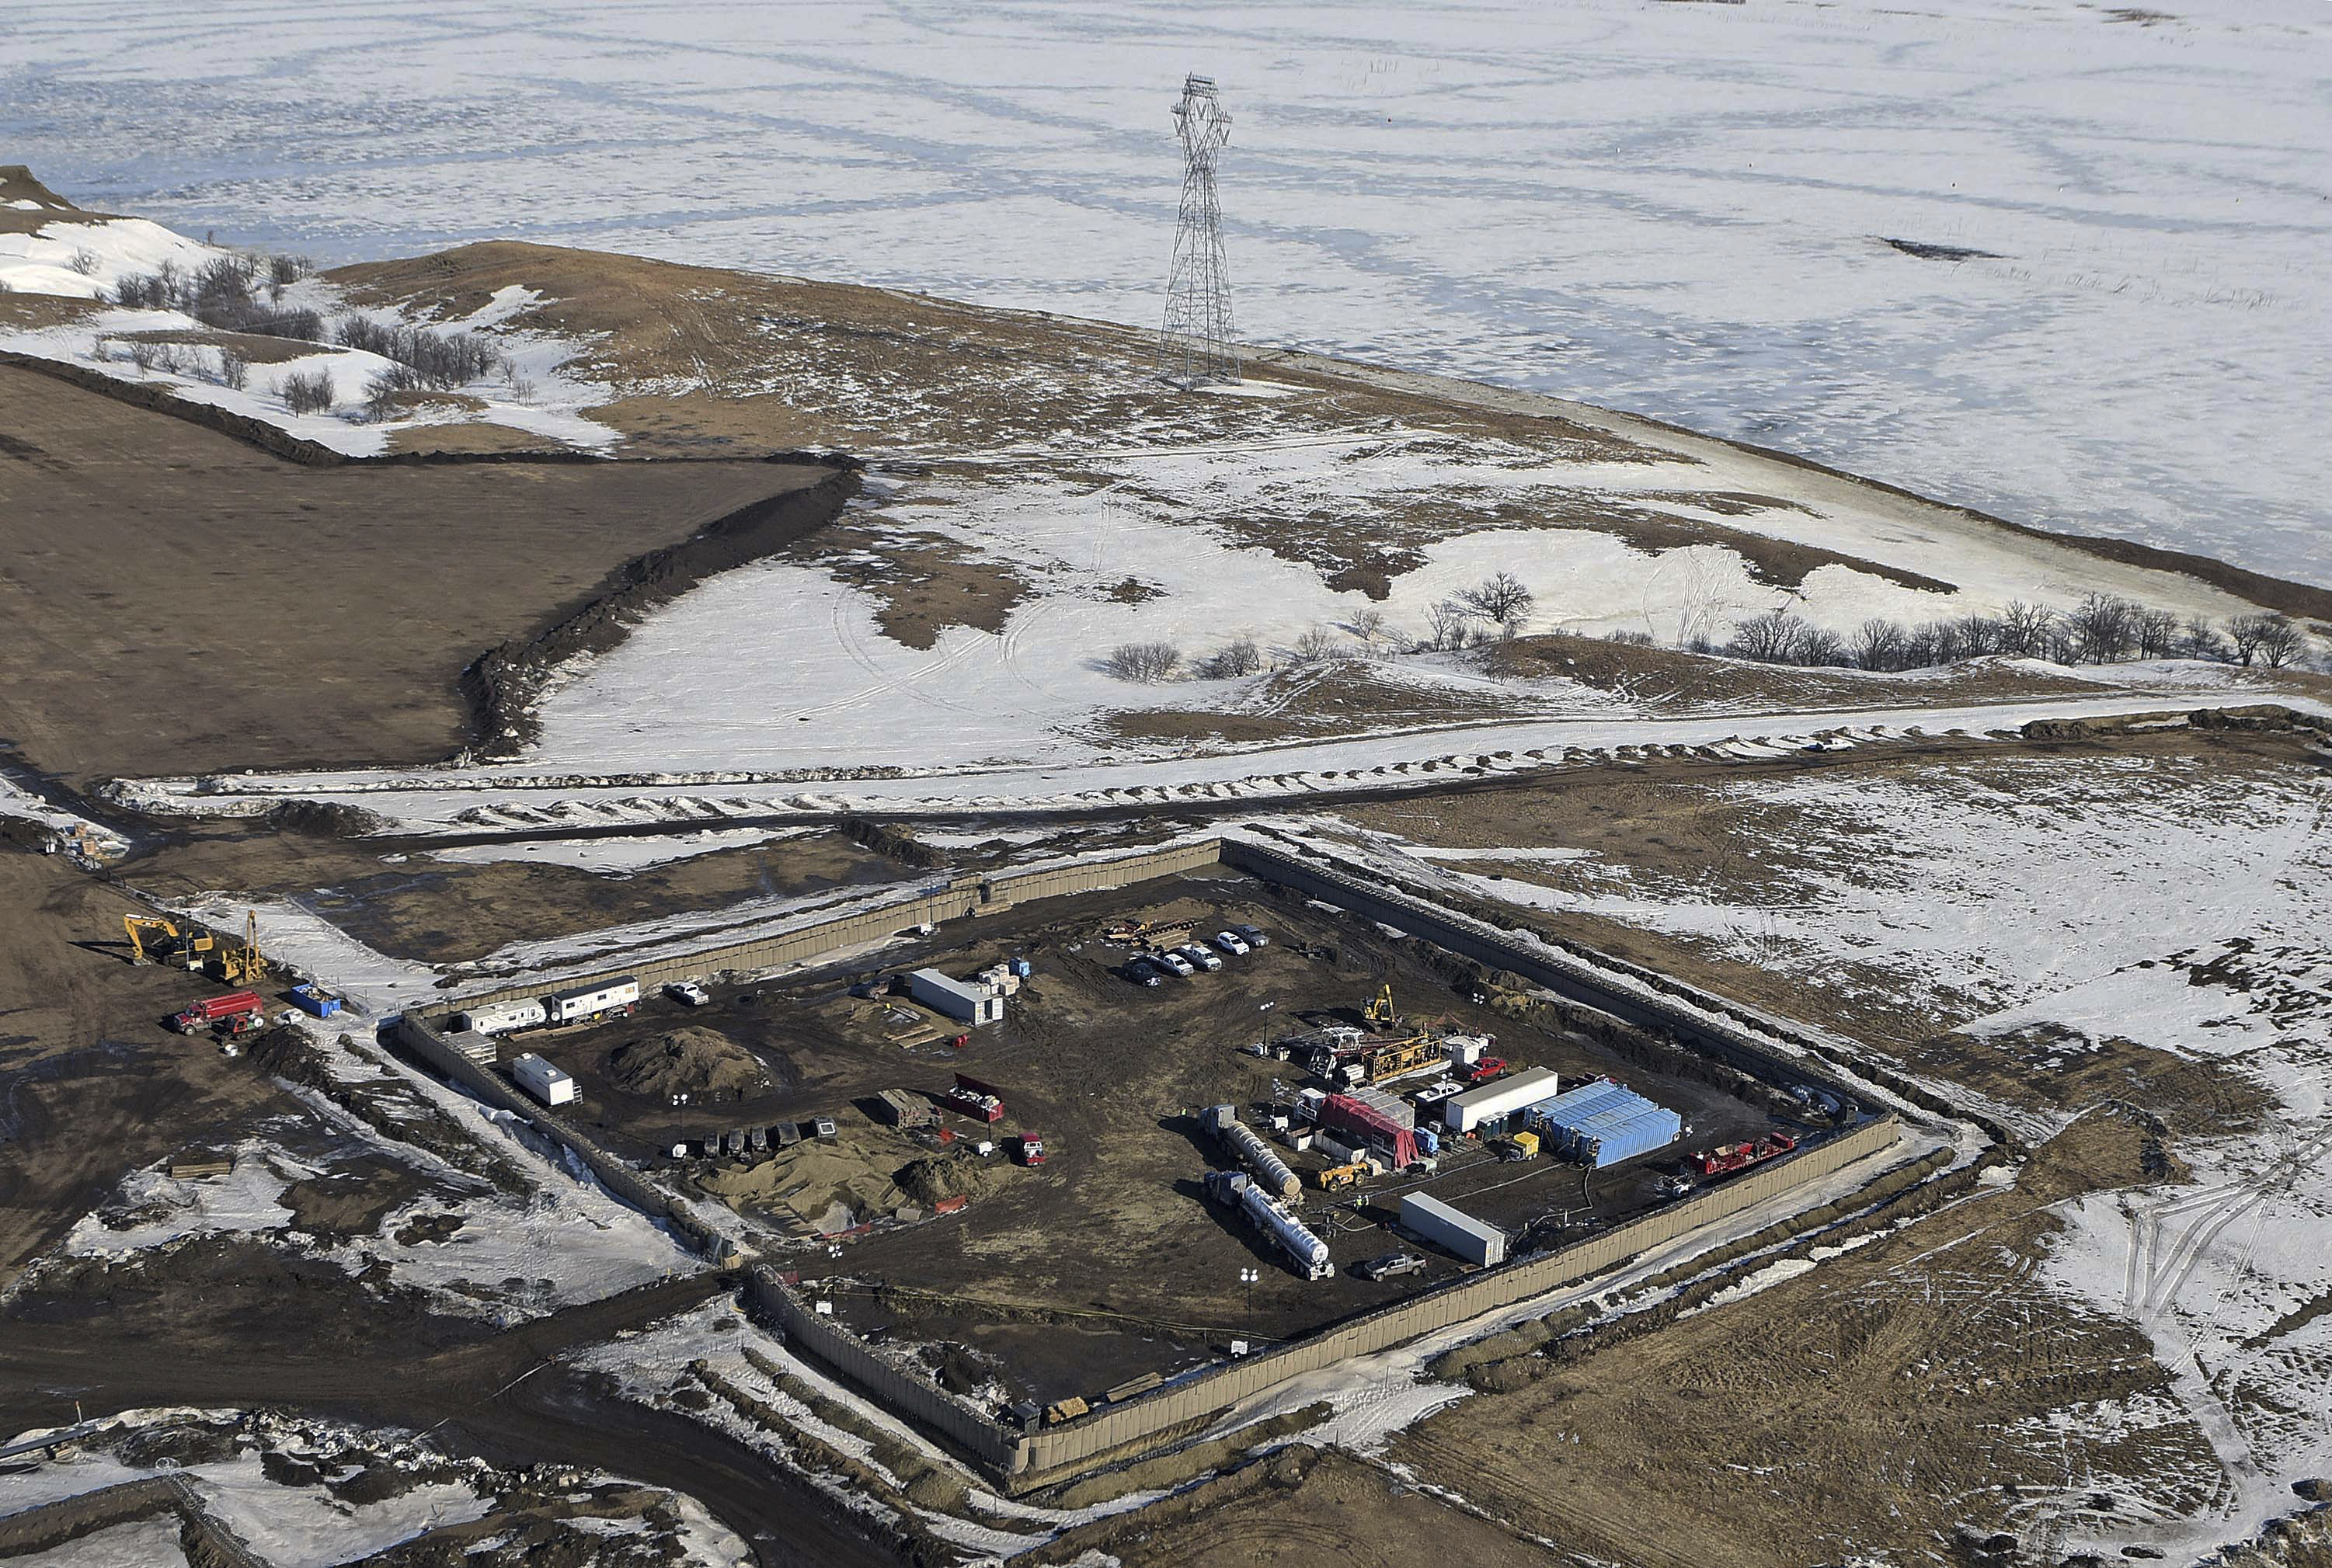 The site where the final phase of the Dakota Access Pipeline will take place with boring equipment routing the pipeline underground and across Lake Oahe to connect with the existing pipeline in Emmons County near Cannon Ball, N.D. (Tom Stromme/The Bismarck Tribune via AP)